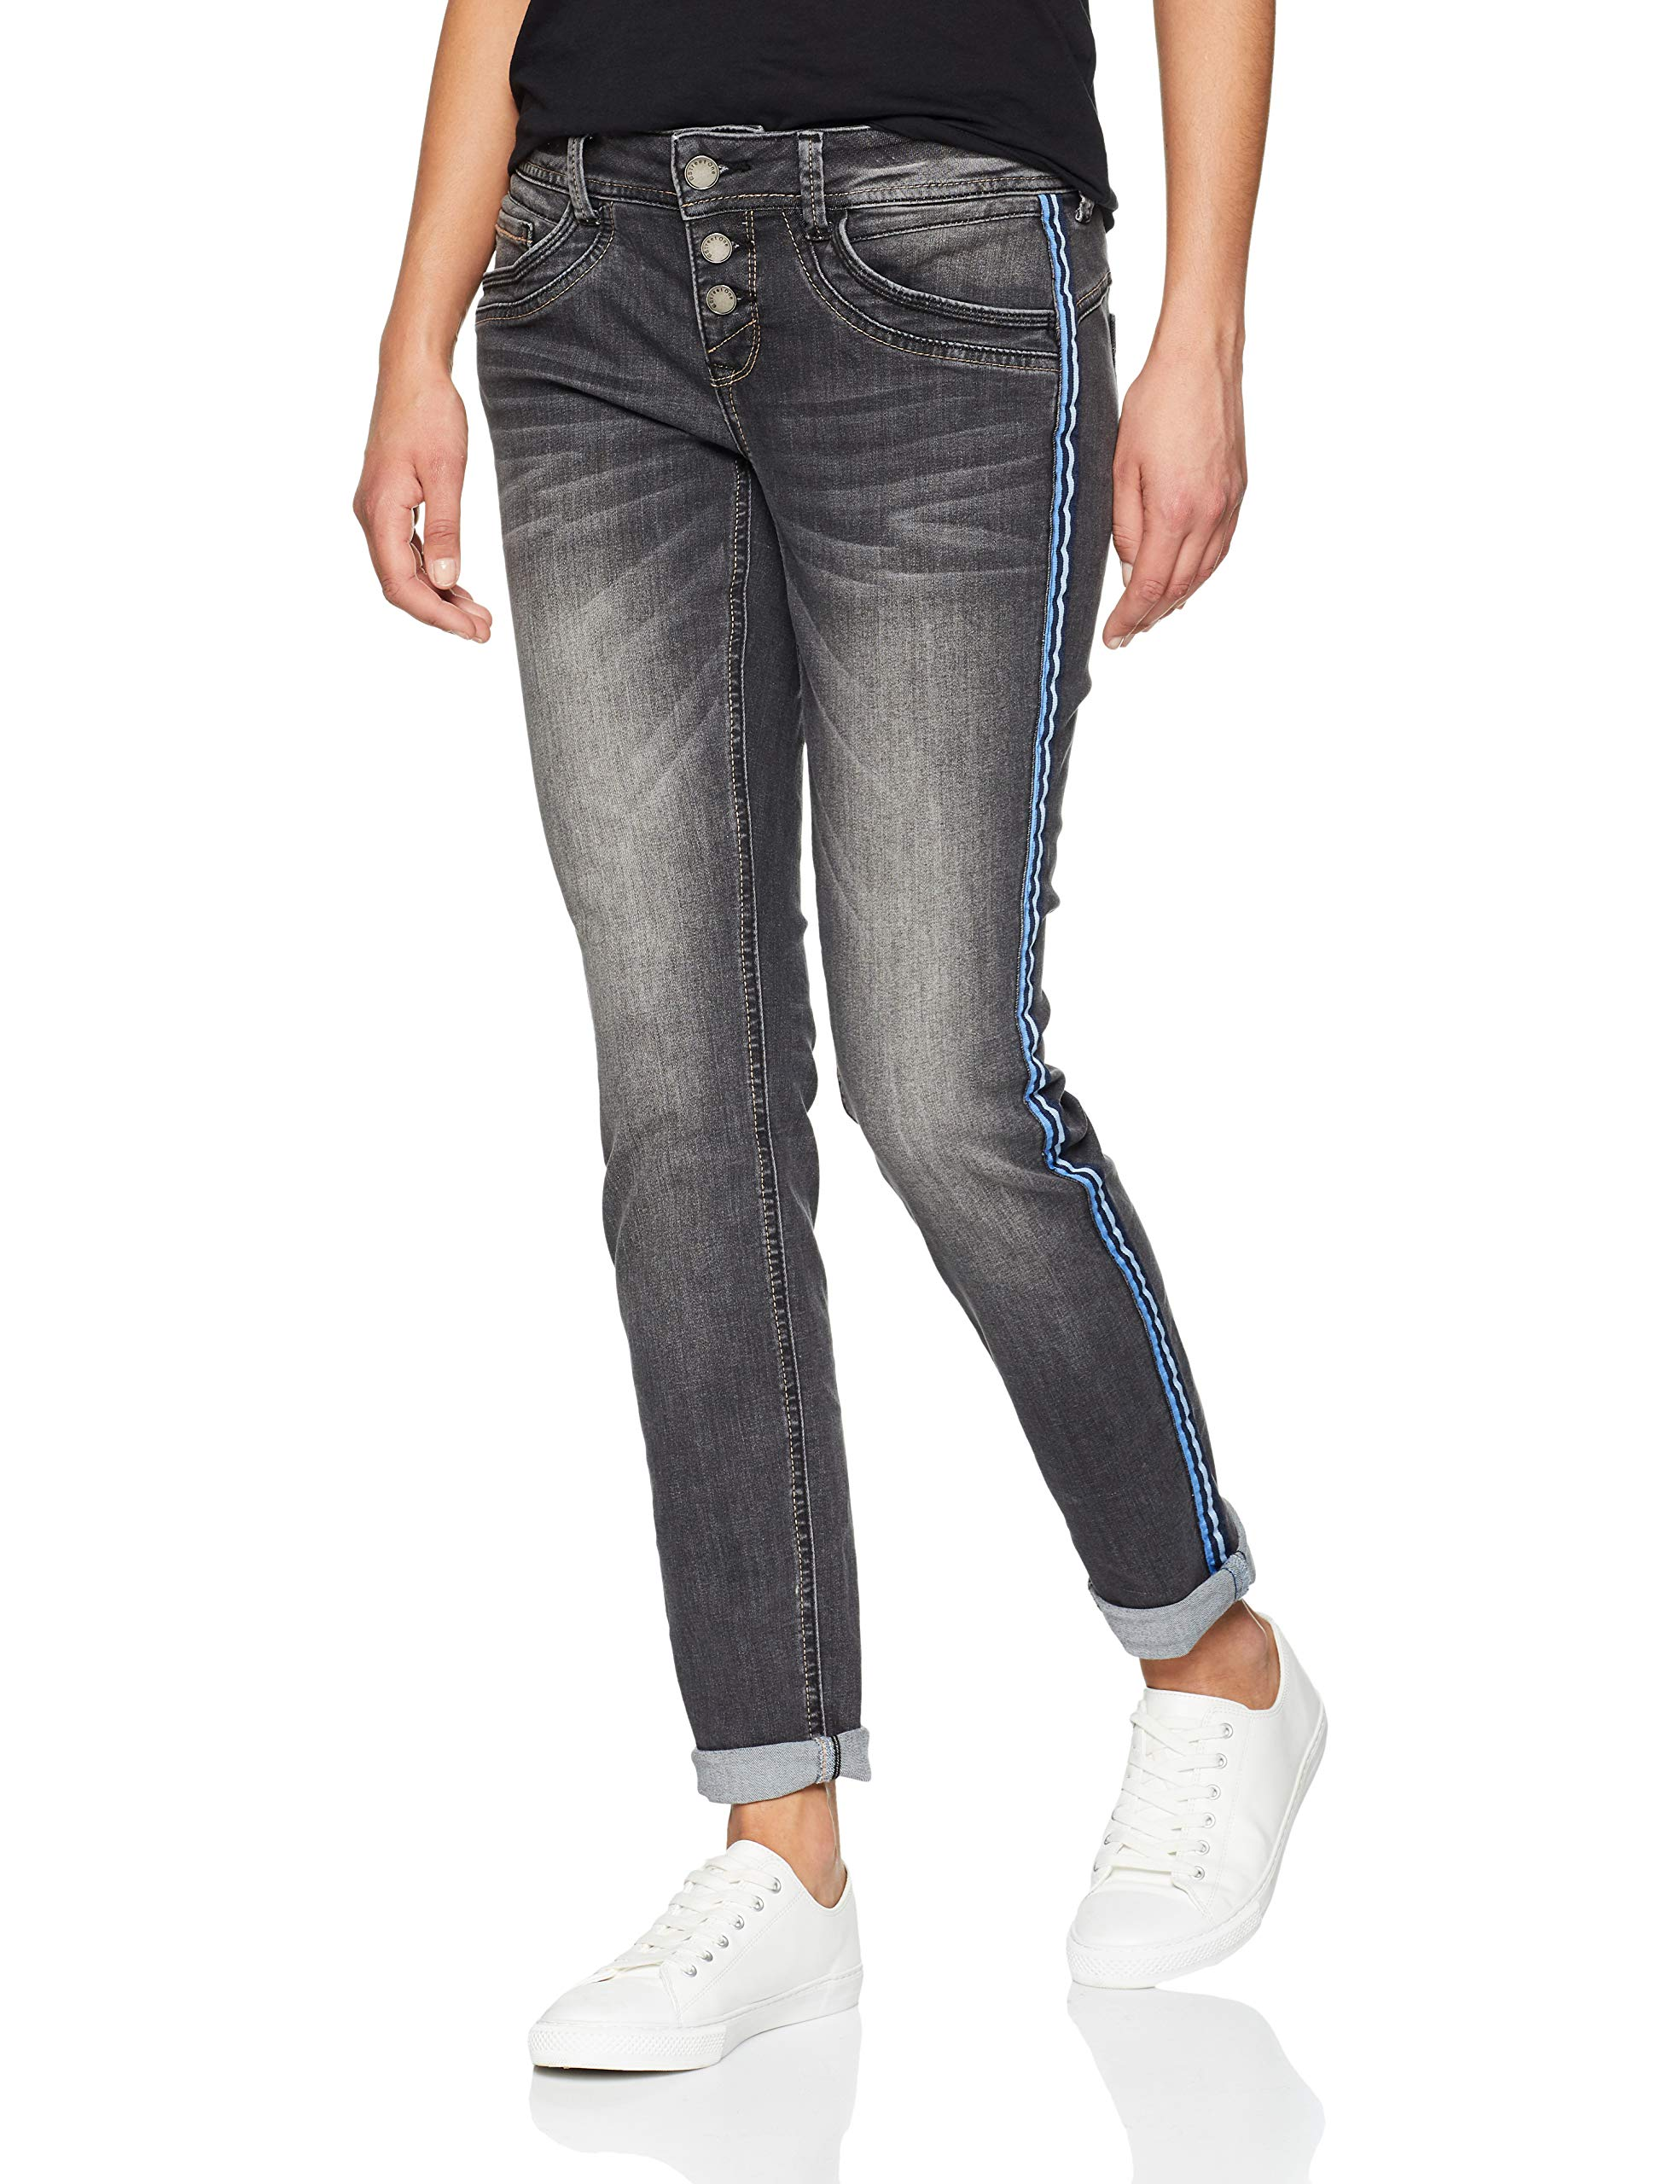 Jean Bleach Crissi One Random 371877 Grey Street l32taille Fabricant34Femme SlimGrisauthentic 11690W44 N8O0PXZwkn